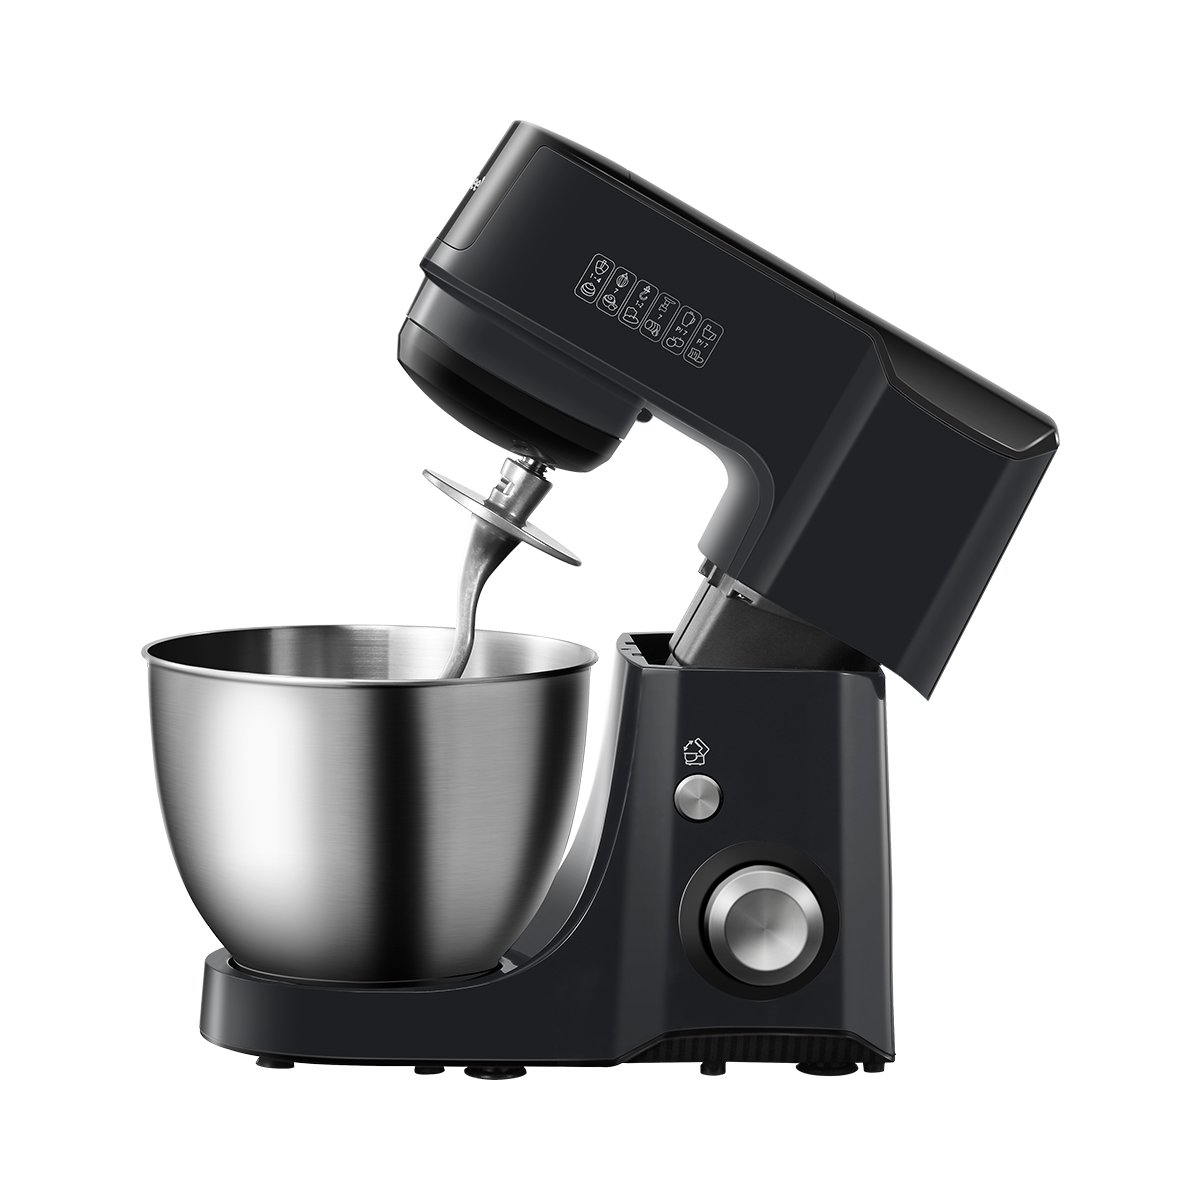 Comfee 4.75Qt 7-in-1 Multi Functions Tilt-Head ABS housing Stand Mixer with SUS Mixing Bowl. 4 Outlets with 7 Speeds & Pulse Control and 15 Minutes Timer Planetary Mixer ¡